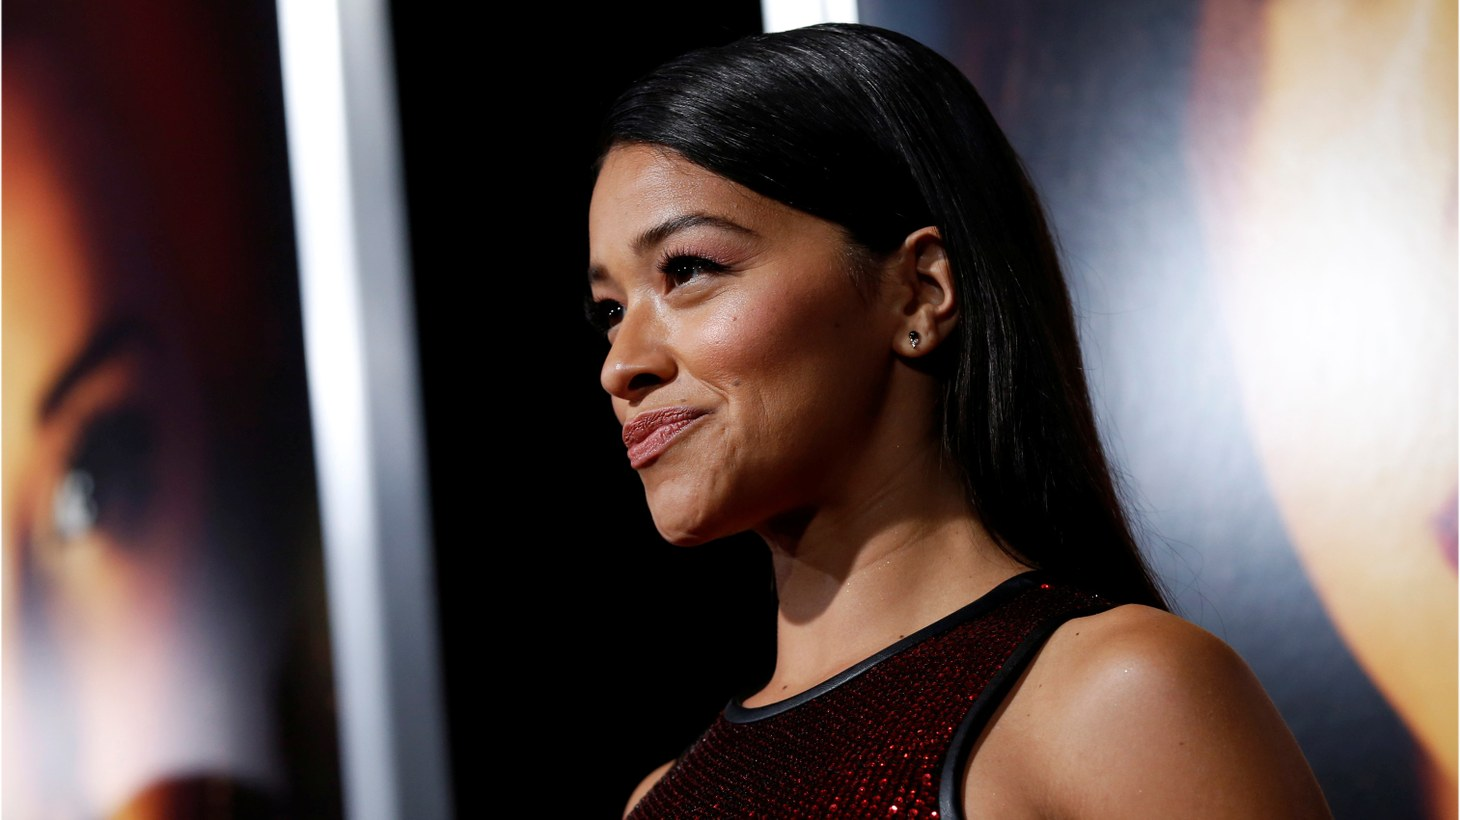 """Gina Rodriguez poses at the premiere for """"Miss Bala"""" in Los Angeles, California, U.S., January 30, 2019."""